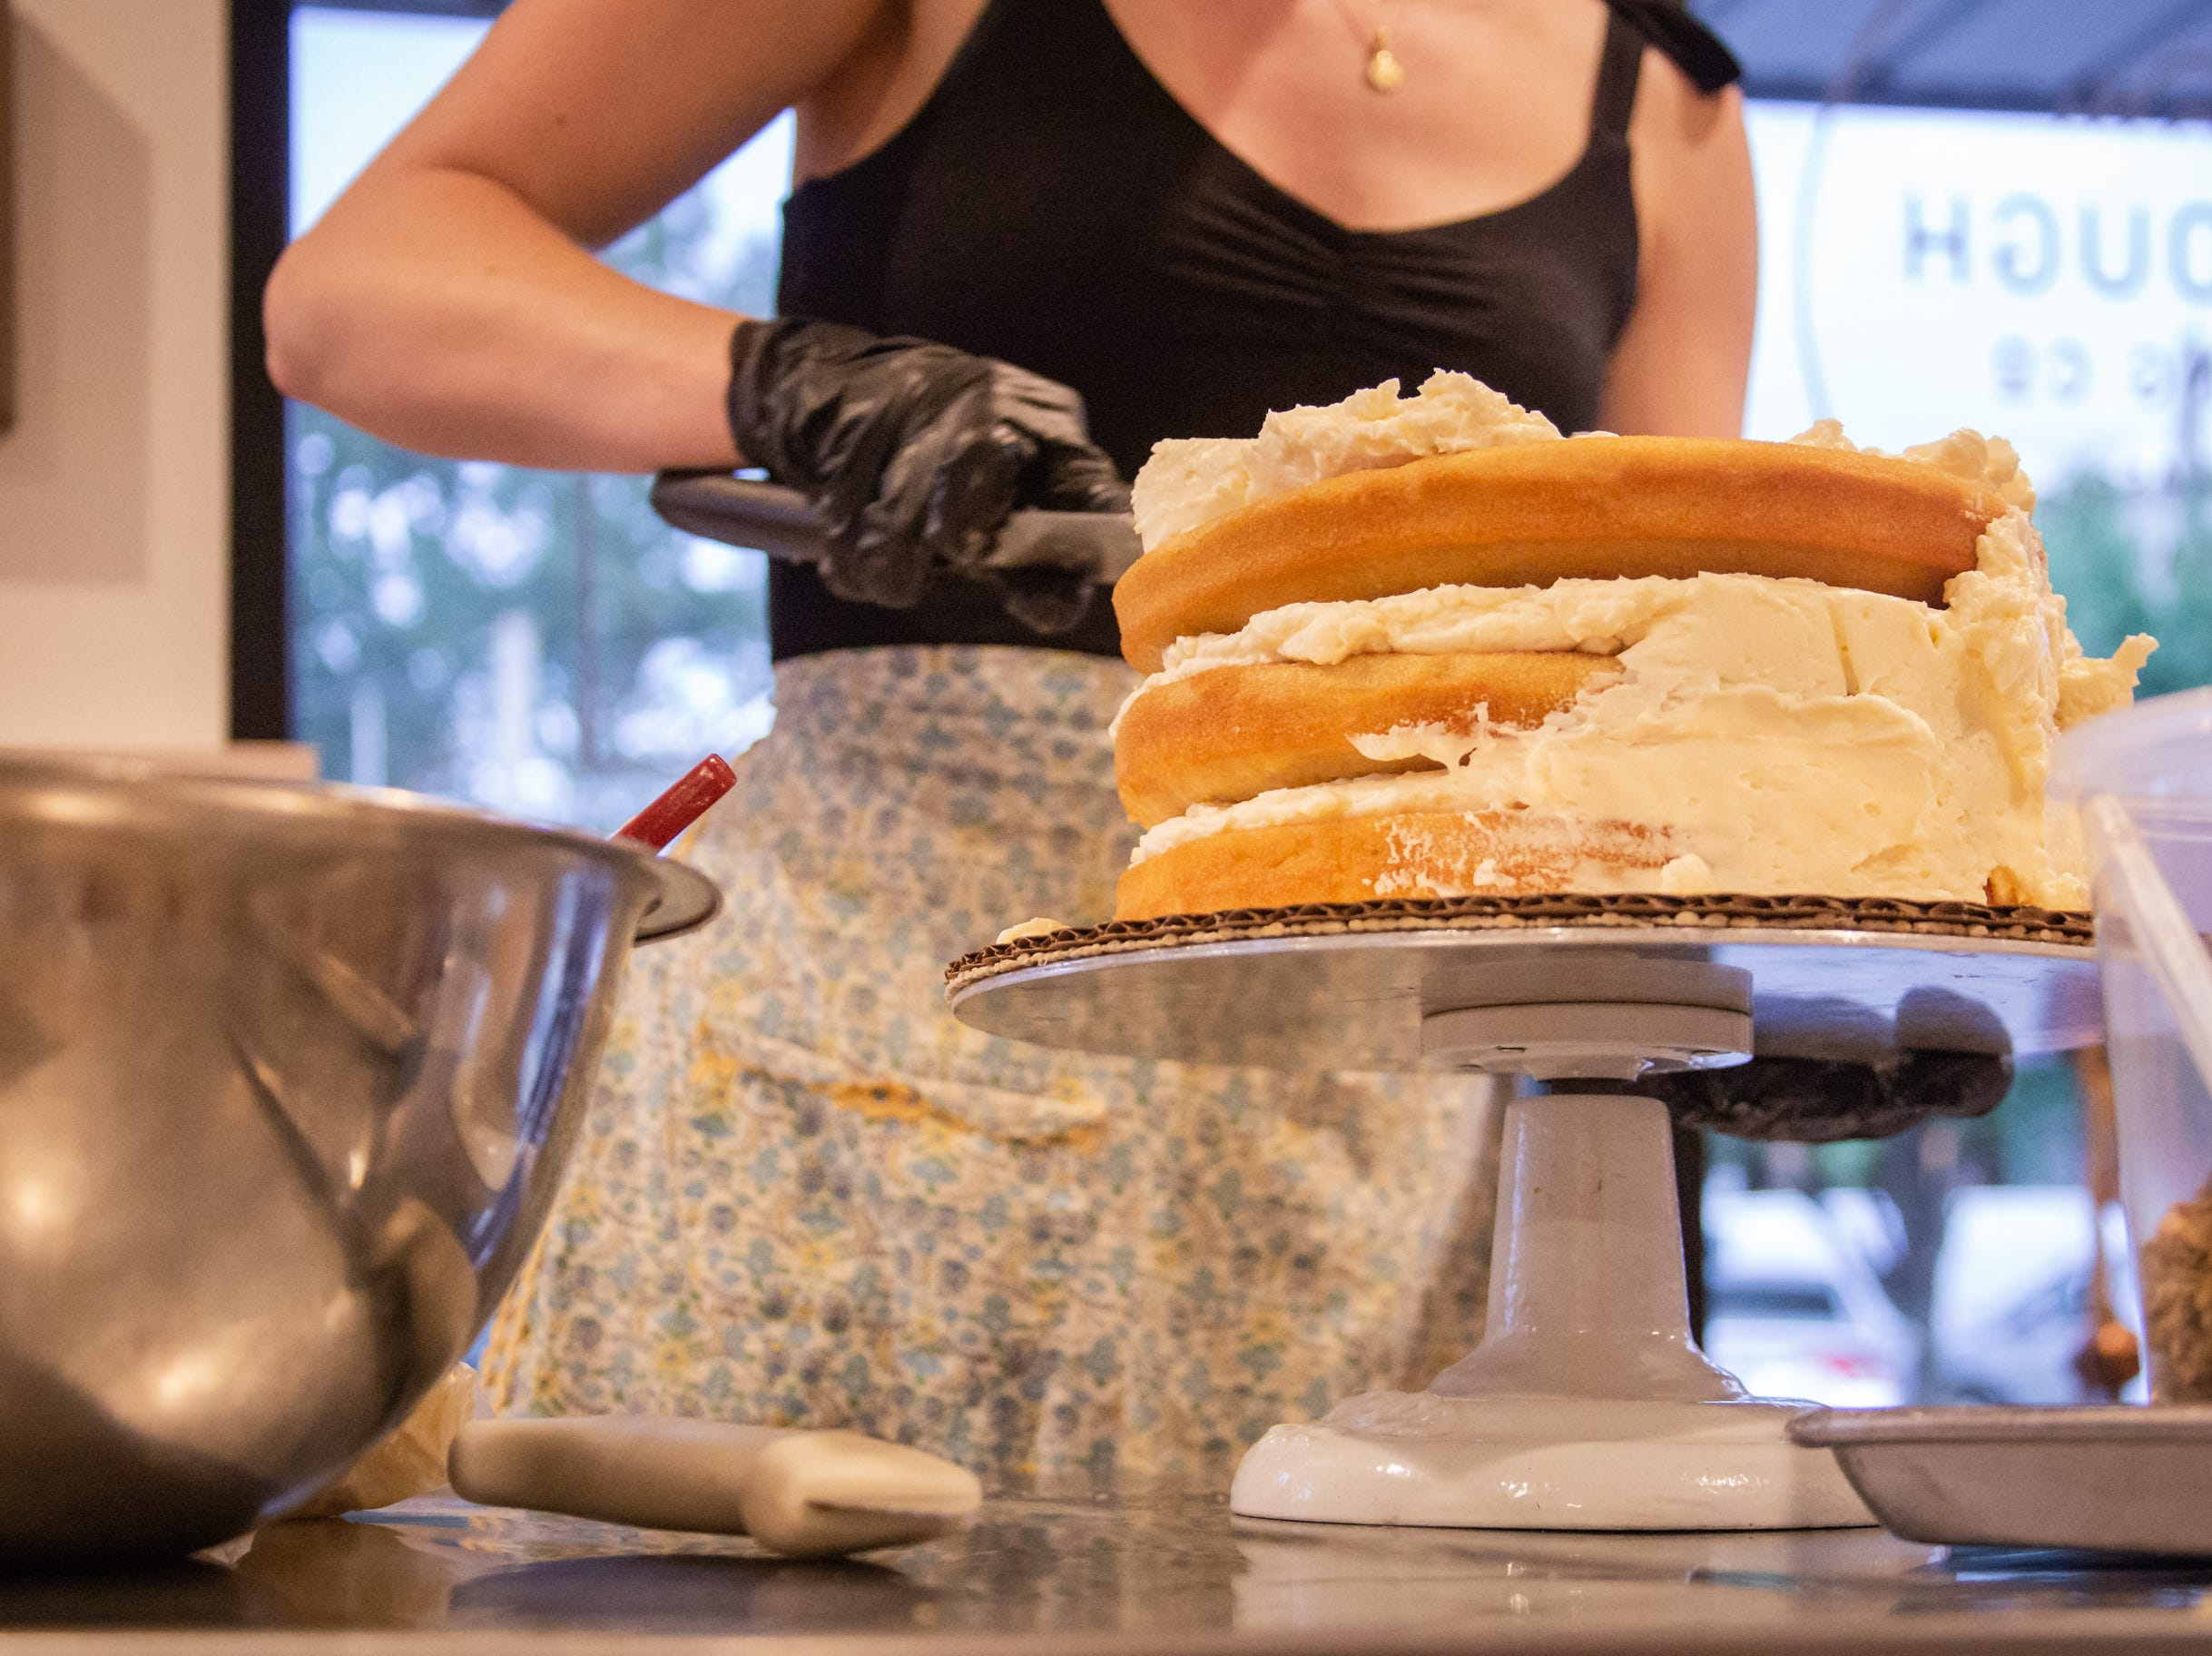 Once a month, for the next three months, SoDough will host their Autumn Series Baking classes. The first of four took place on Thursday, September 27, 2018 and focused on cake assembly and decoration. Tallahassee, FL.